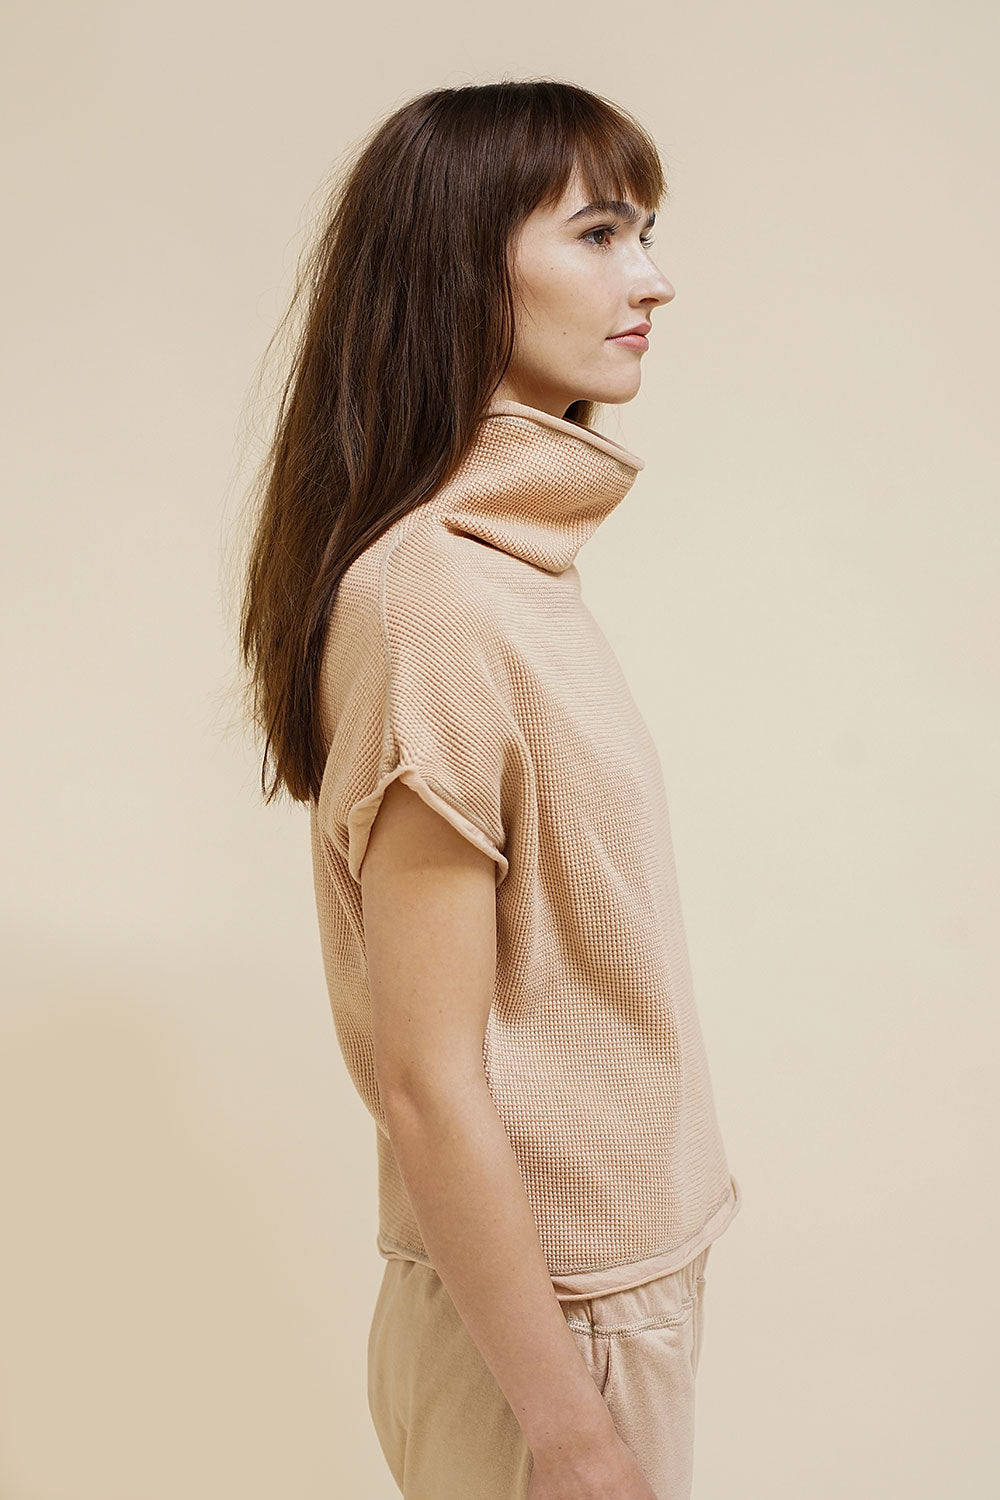 Alabama Chanin The Waffle Sweatshirt Women's Pull On Top with Short Sleeves and Funnel Neck in Pink